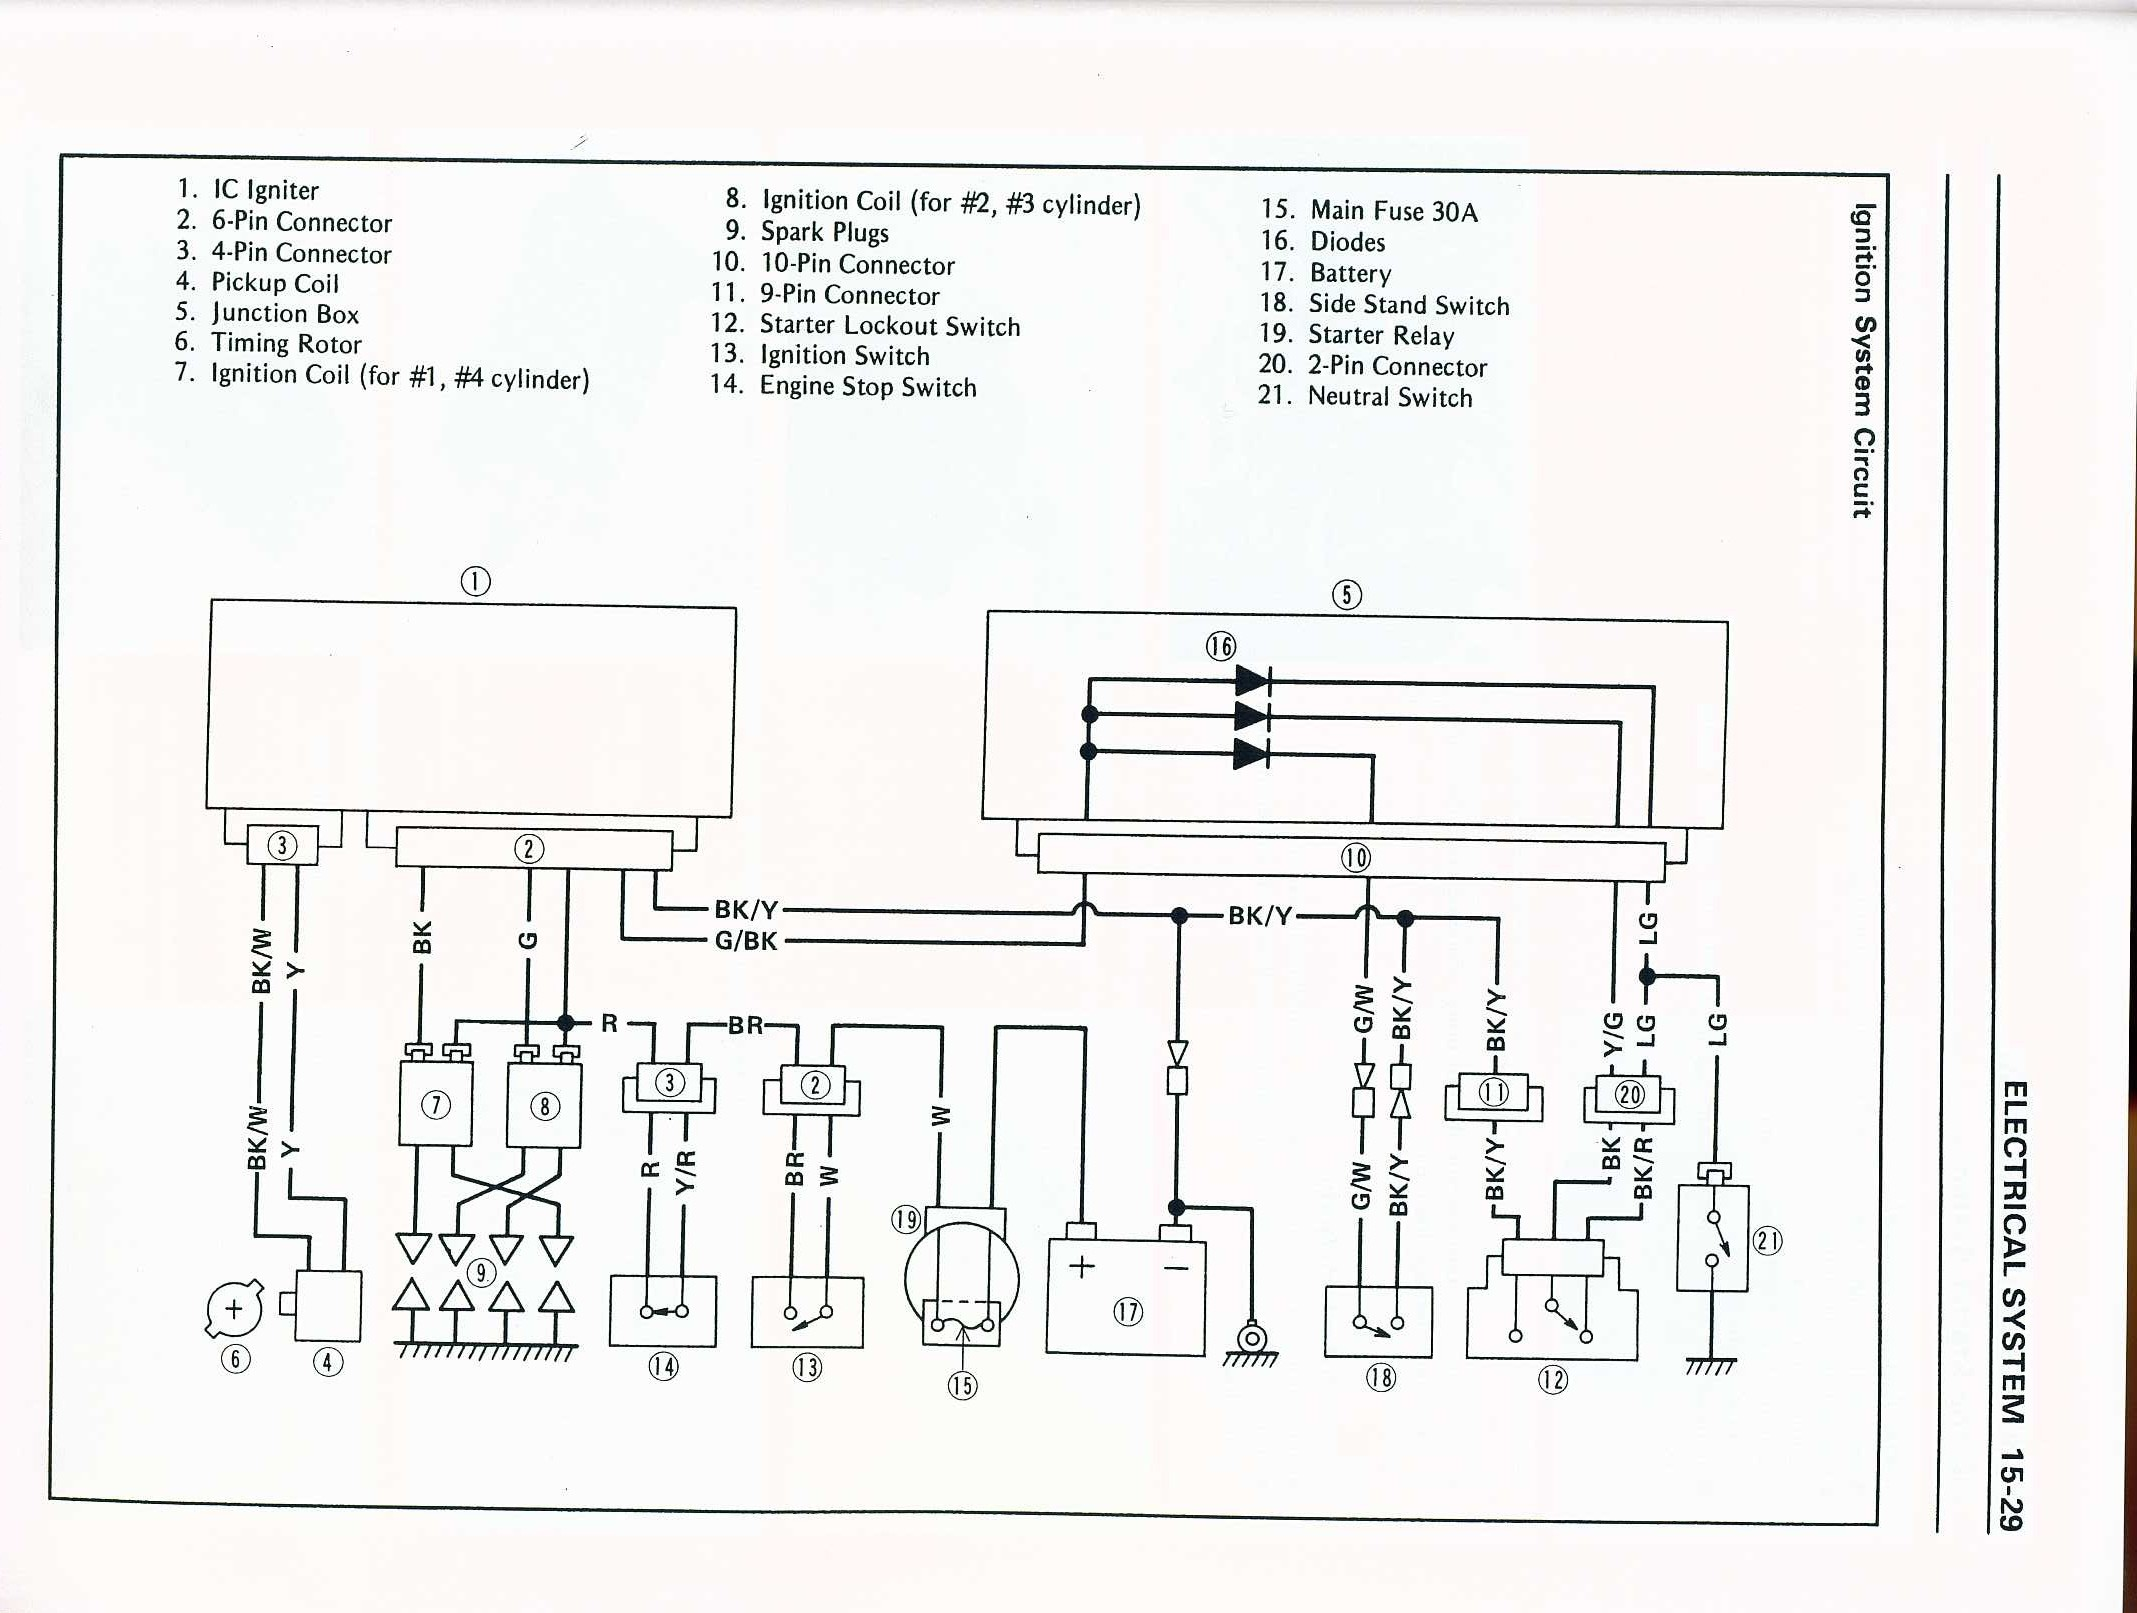 kawasaki cdi wiring diagram kawasaki free engine image for user manual kawasaki  hd3